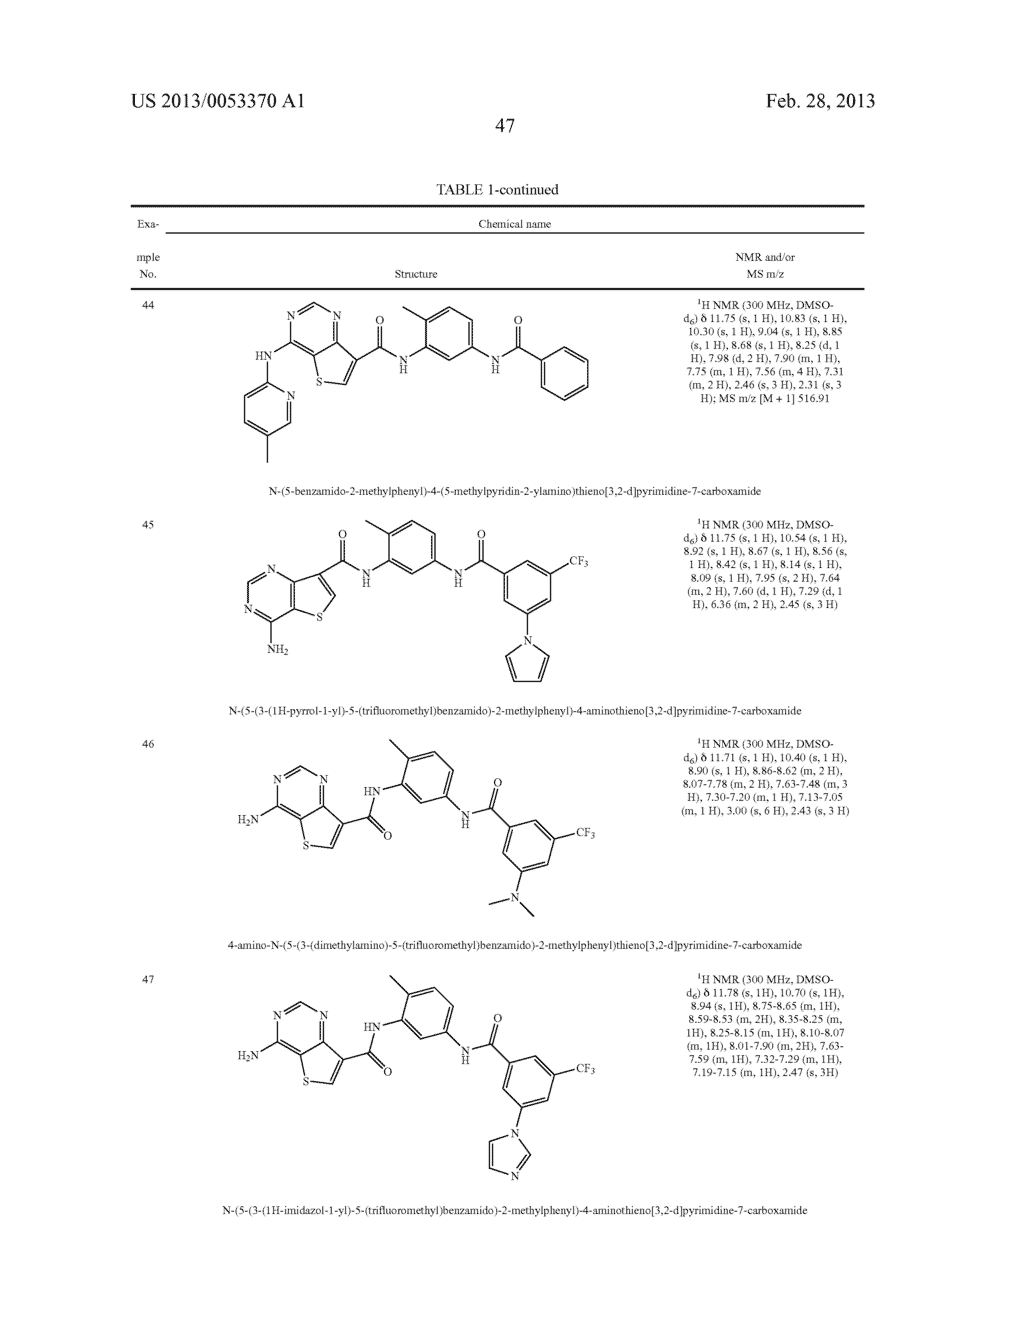 THIENO[3,2-d]PYRIMIDINE DERIVATIVES HAVING INHIBITORY ACTIVITY ON PROTEIN     KINASES - diagram, schematic, and image 48